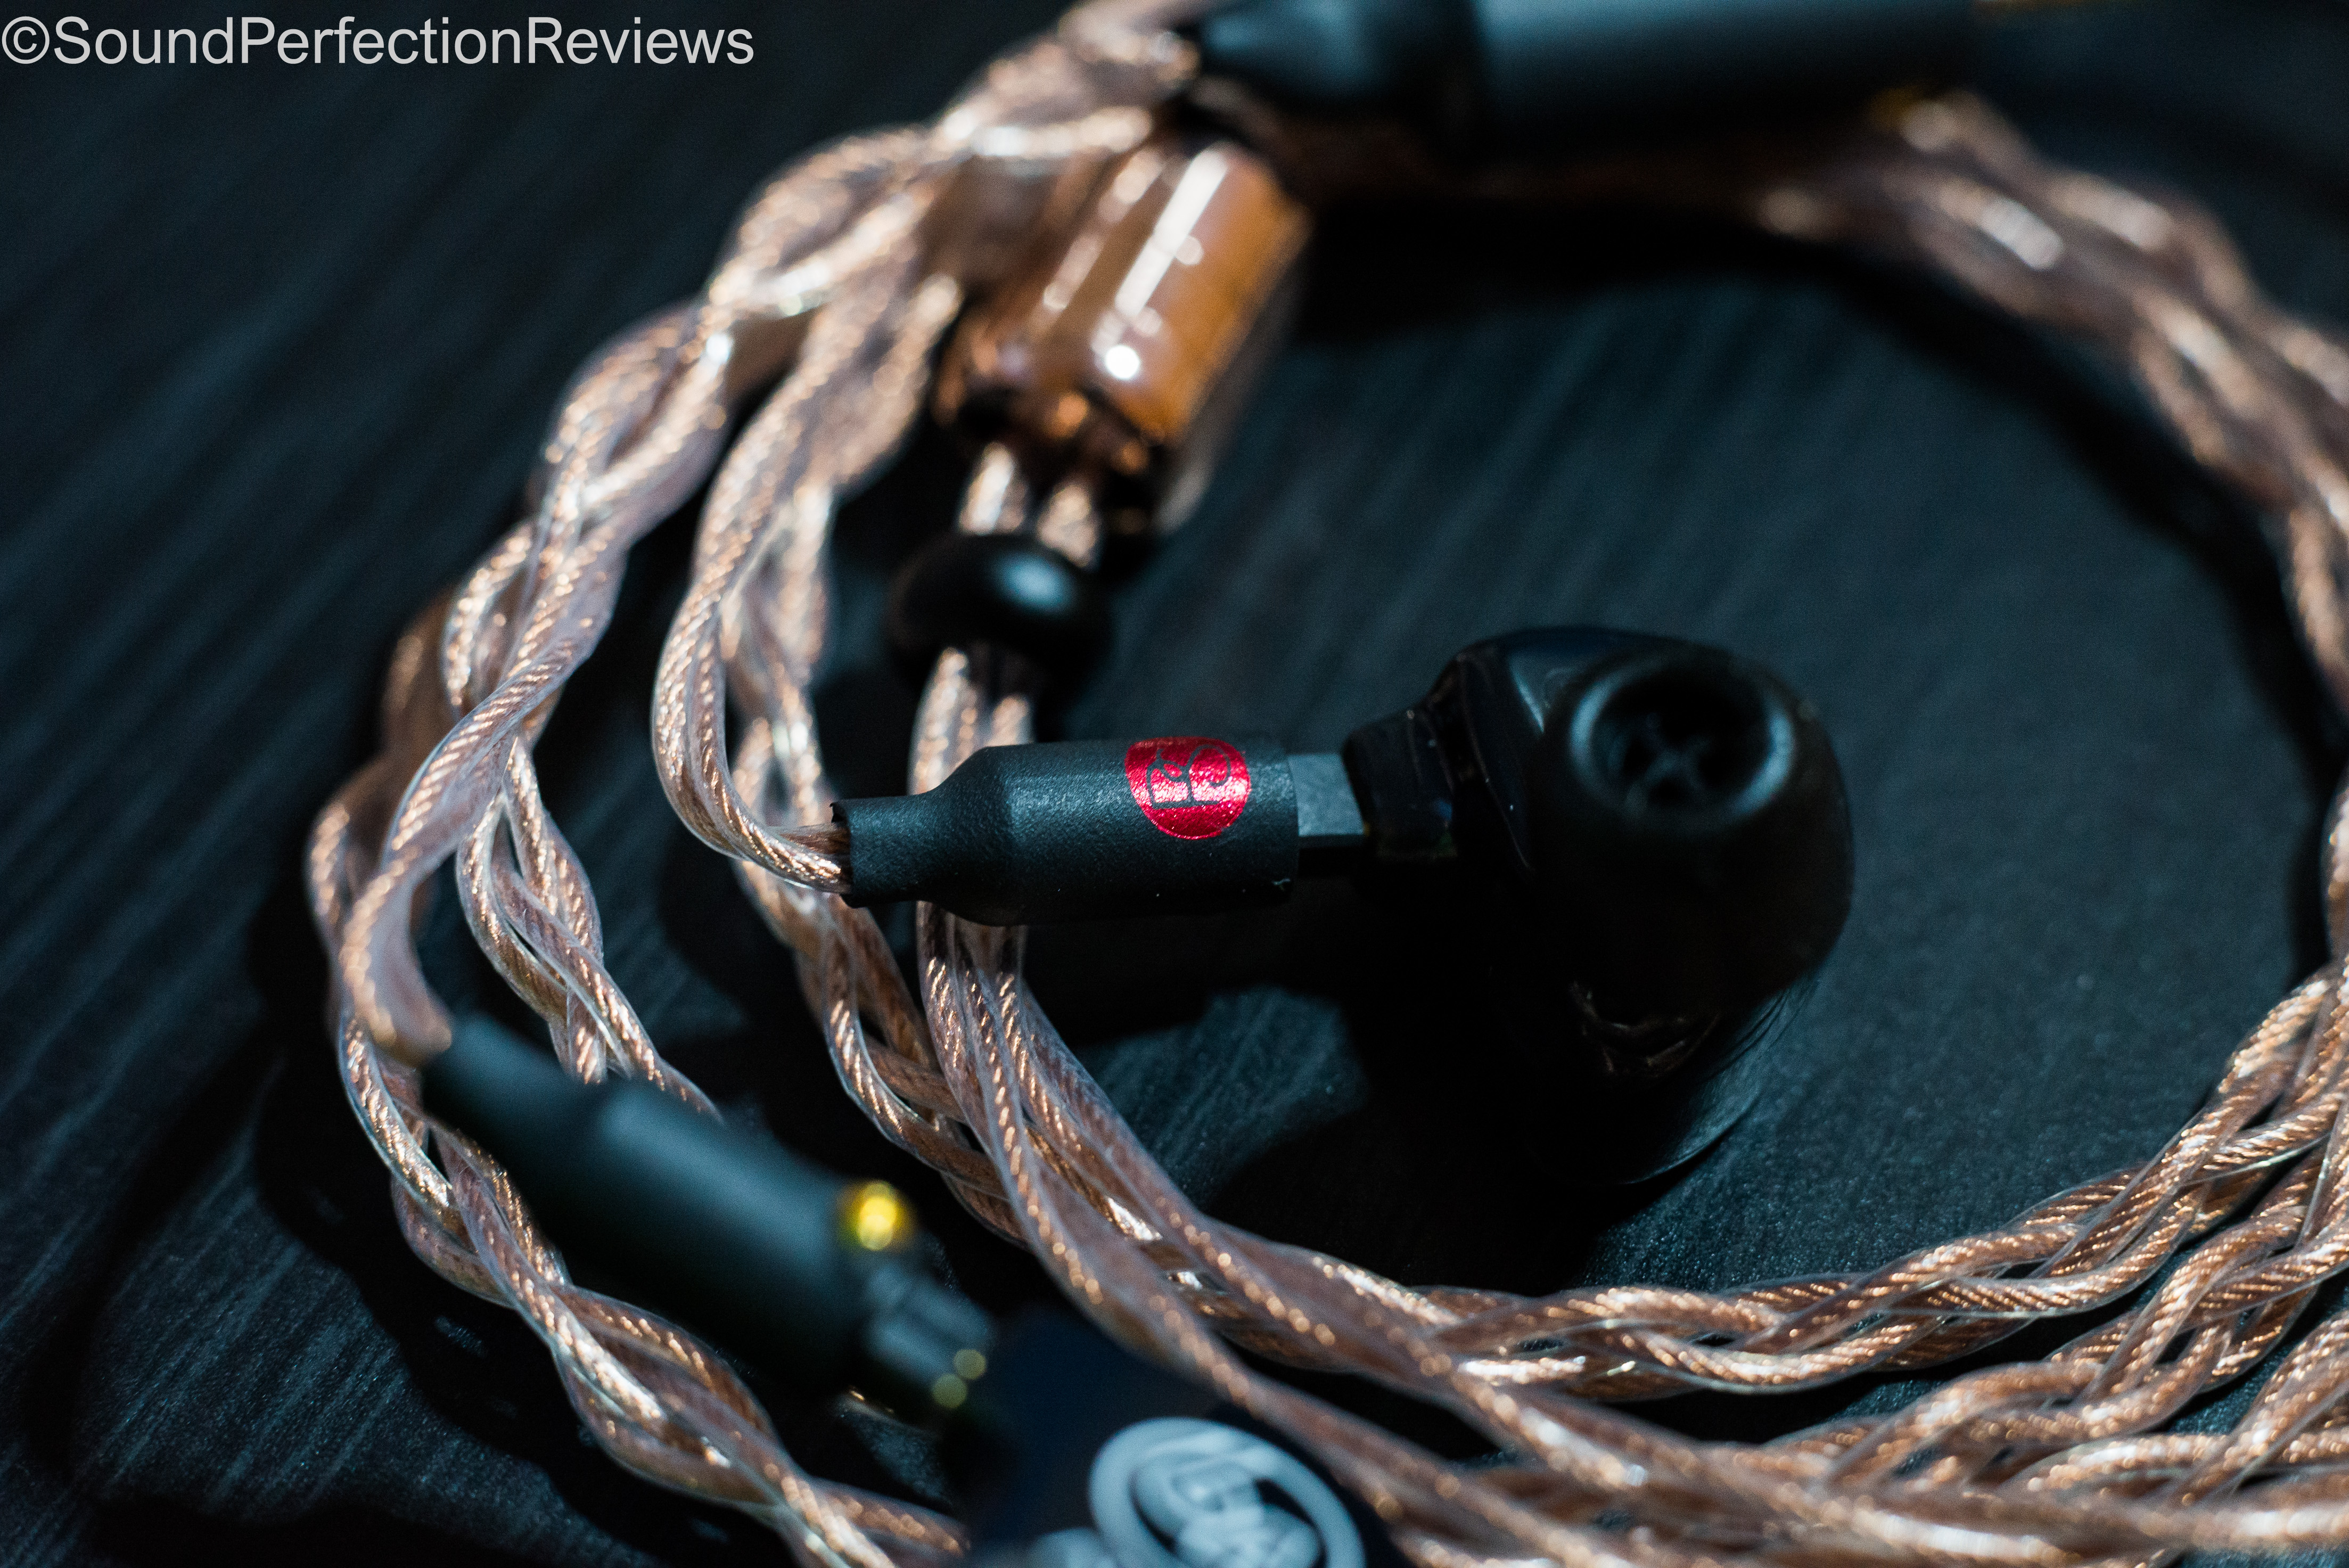 plusSound Exo Series Cable | Headphone Reviews and Discussion - Head ...